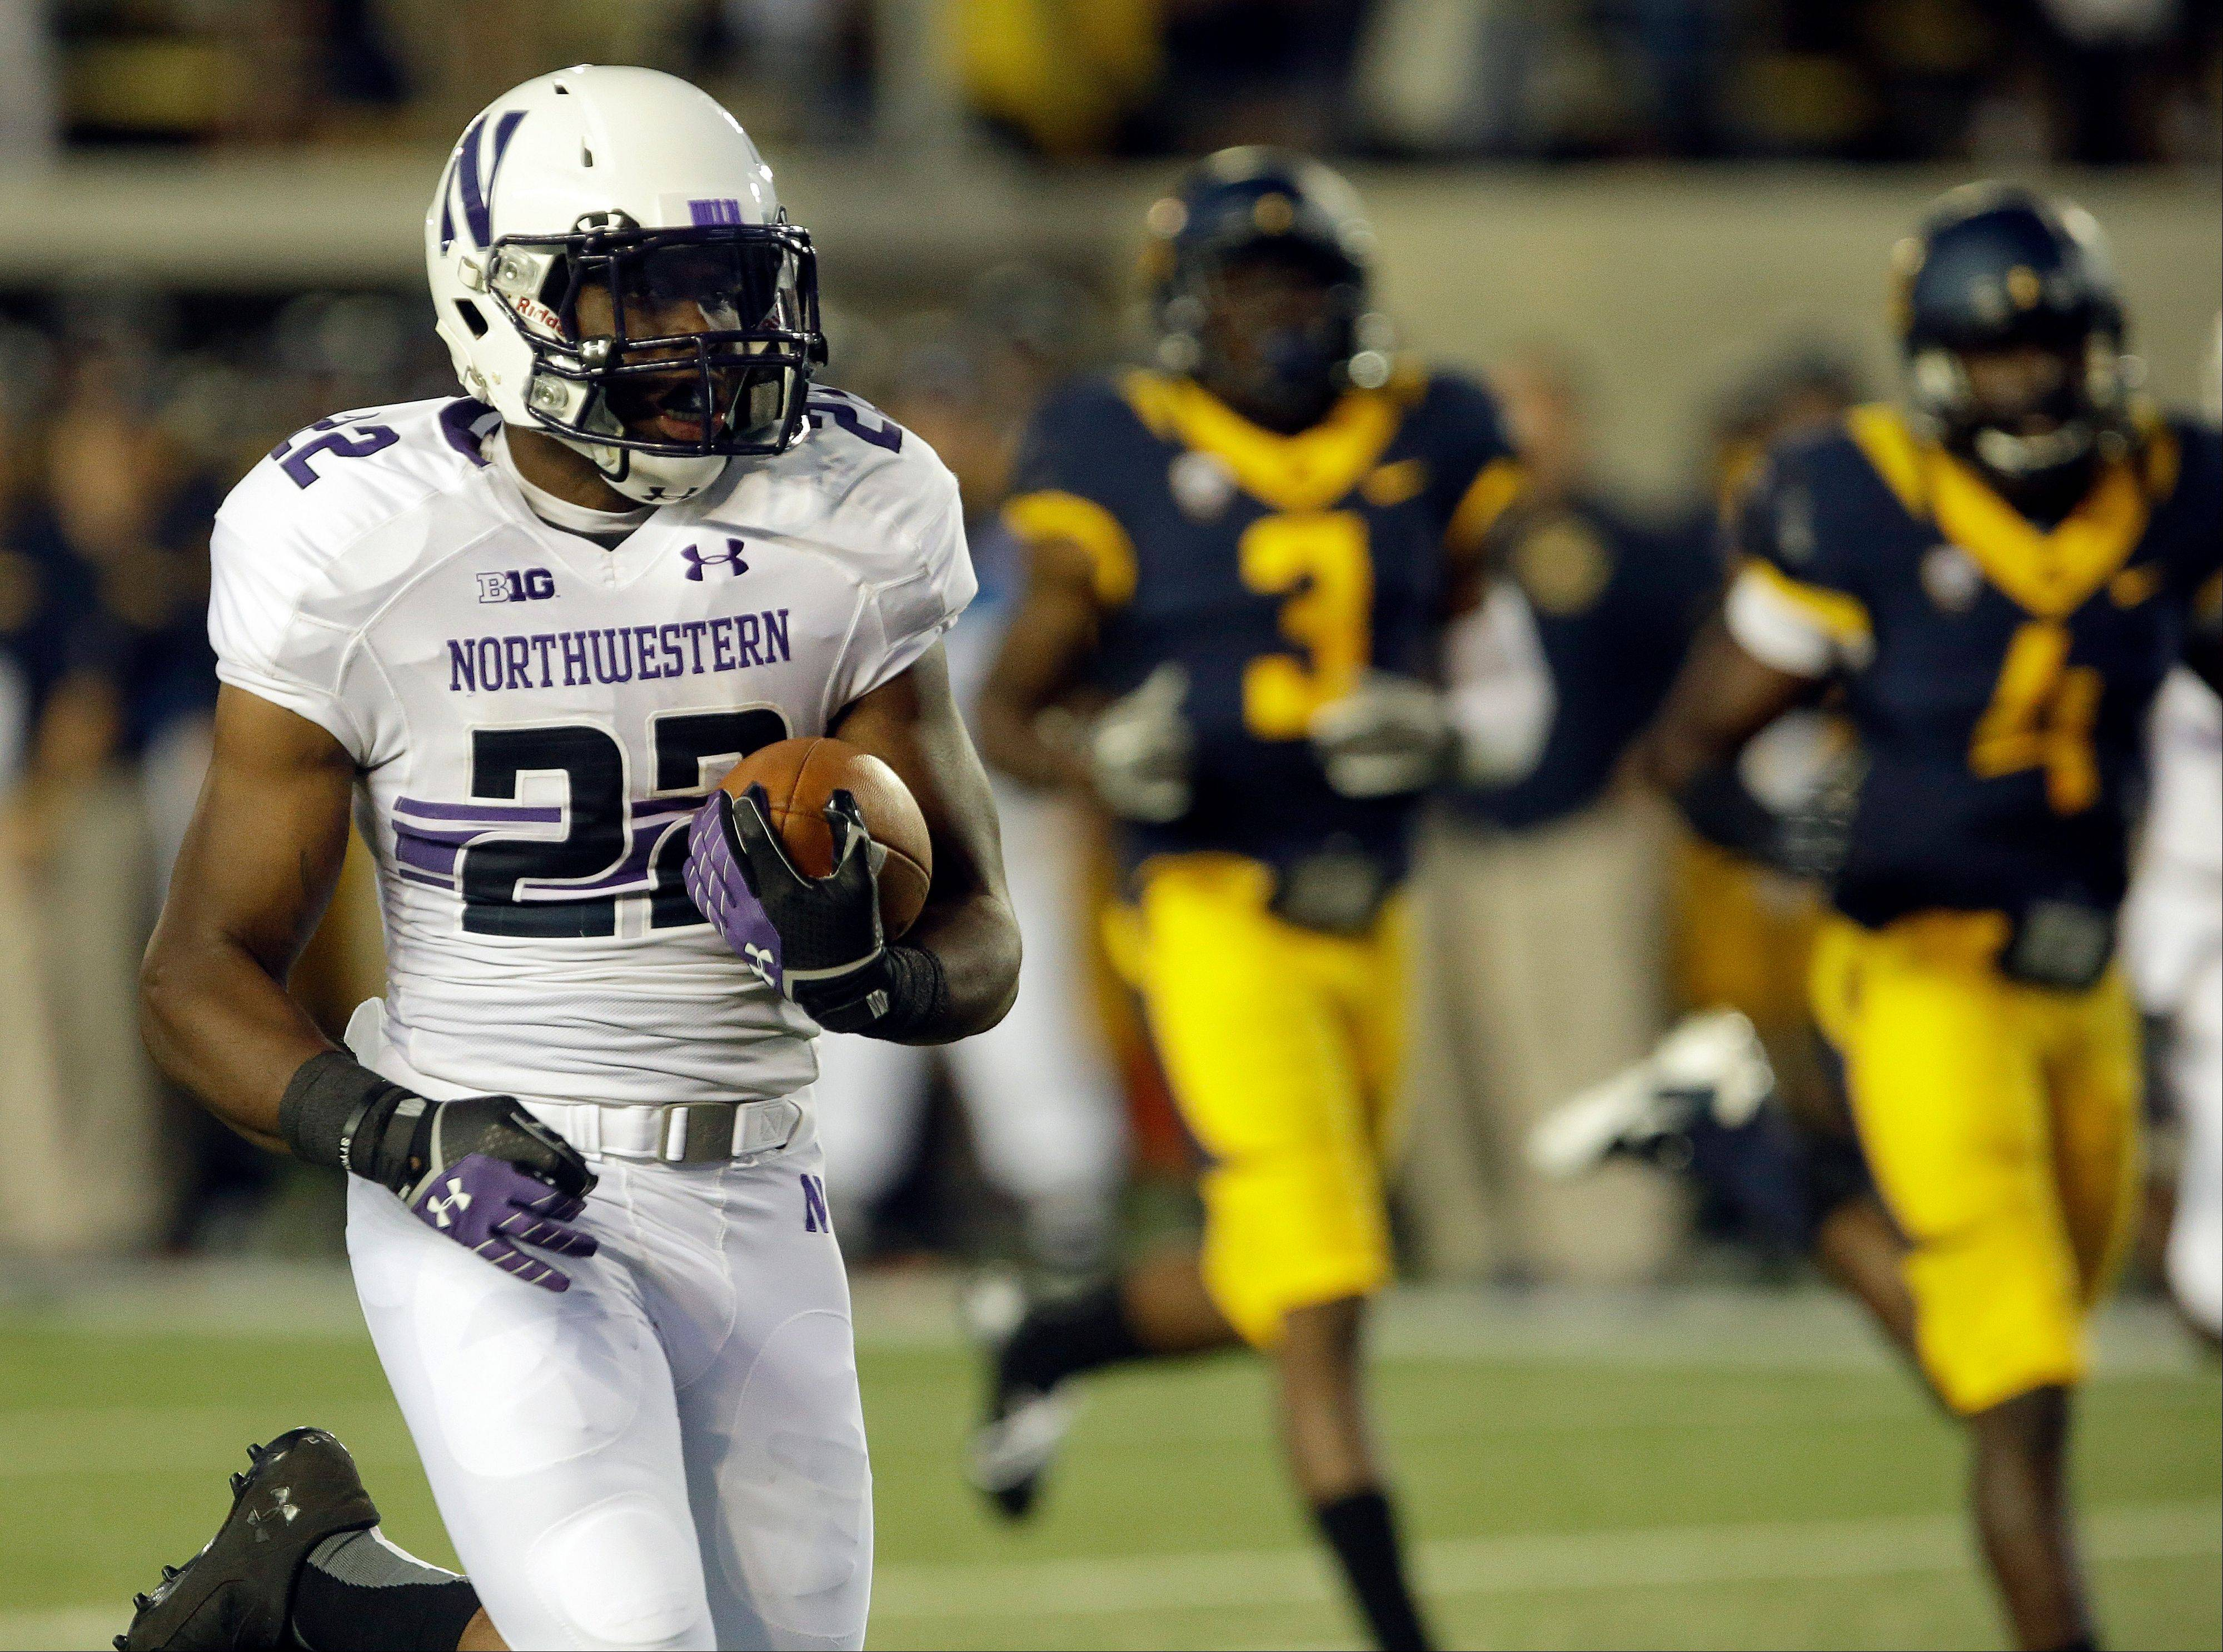 Northwestern's Treyvon Green runs for a touchdown against California during the Wildcats' season-opening victory Saturday night.